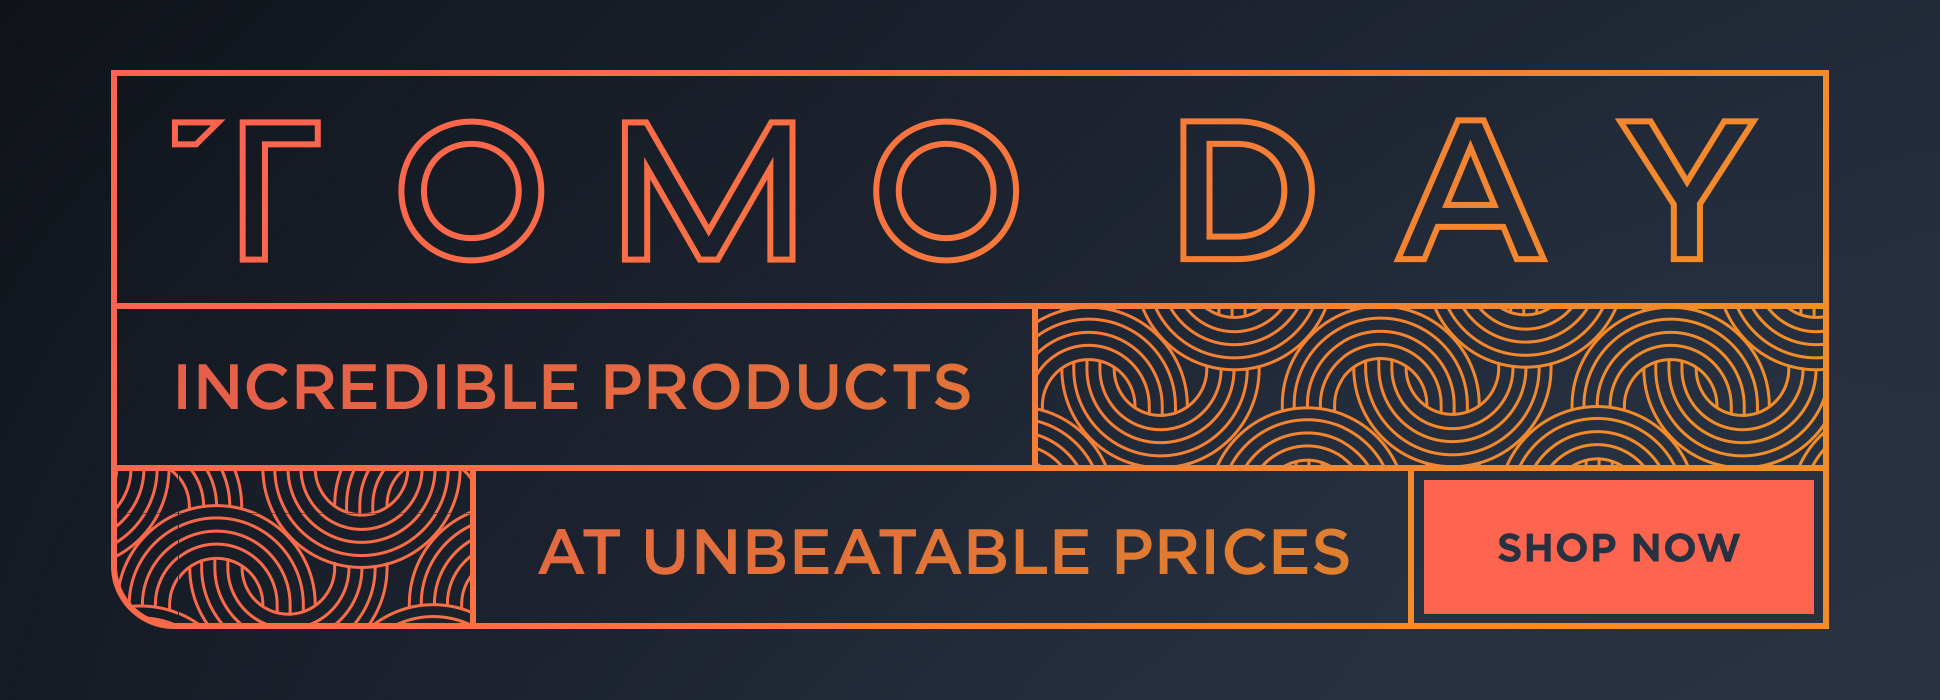 TOMO Day Deals - Day 1 (banners)